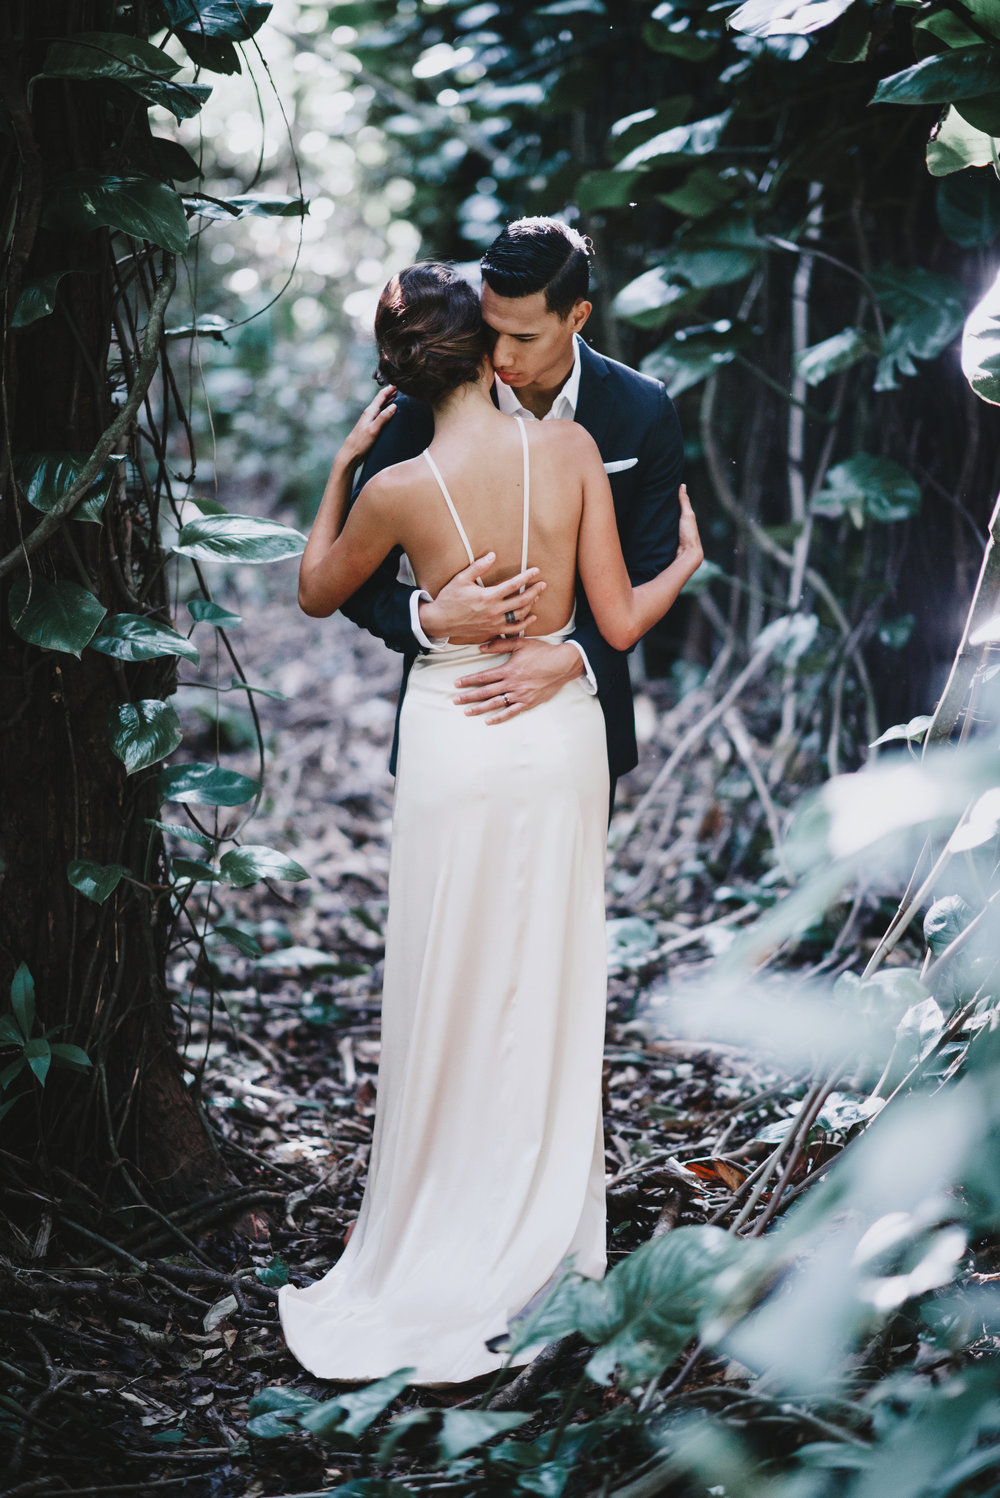 VSCO_Hawaii_Wedding_Photography_June_Cochran_201_7272.jpg